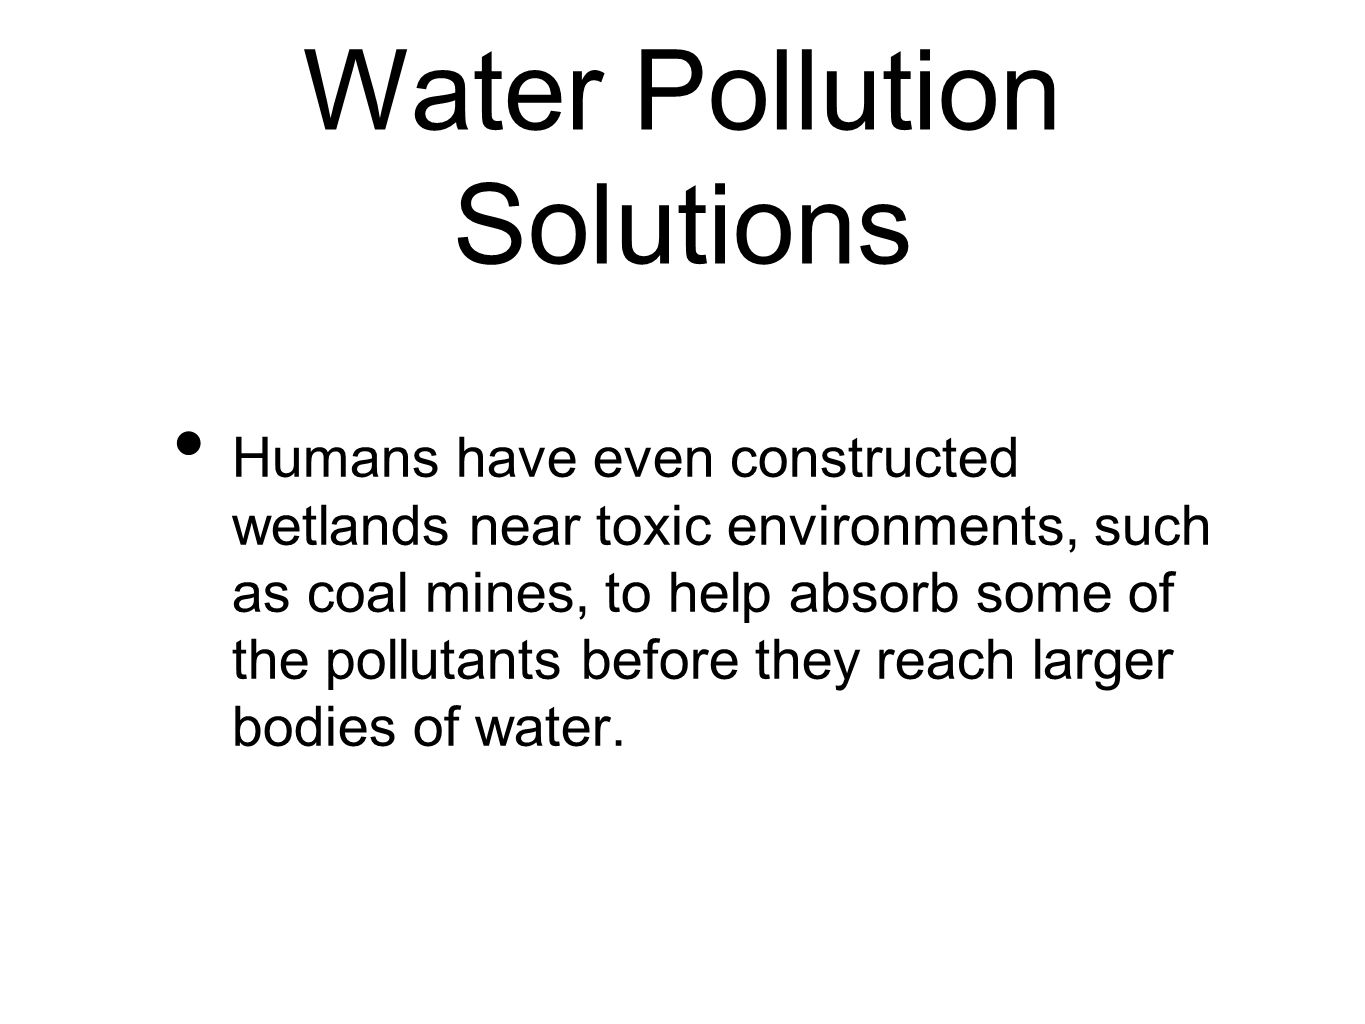 Water Pollution Solutions Humans have even constructed wetlands near toxic environments, such as coal mines, to help absorb some of the pollutants before they reach larger bodies of water.